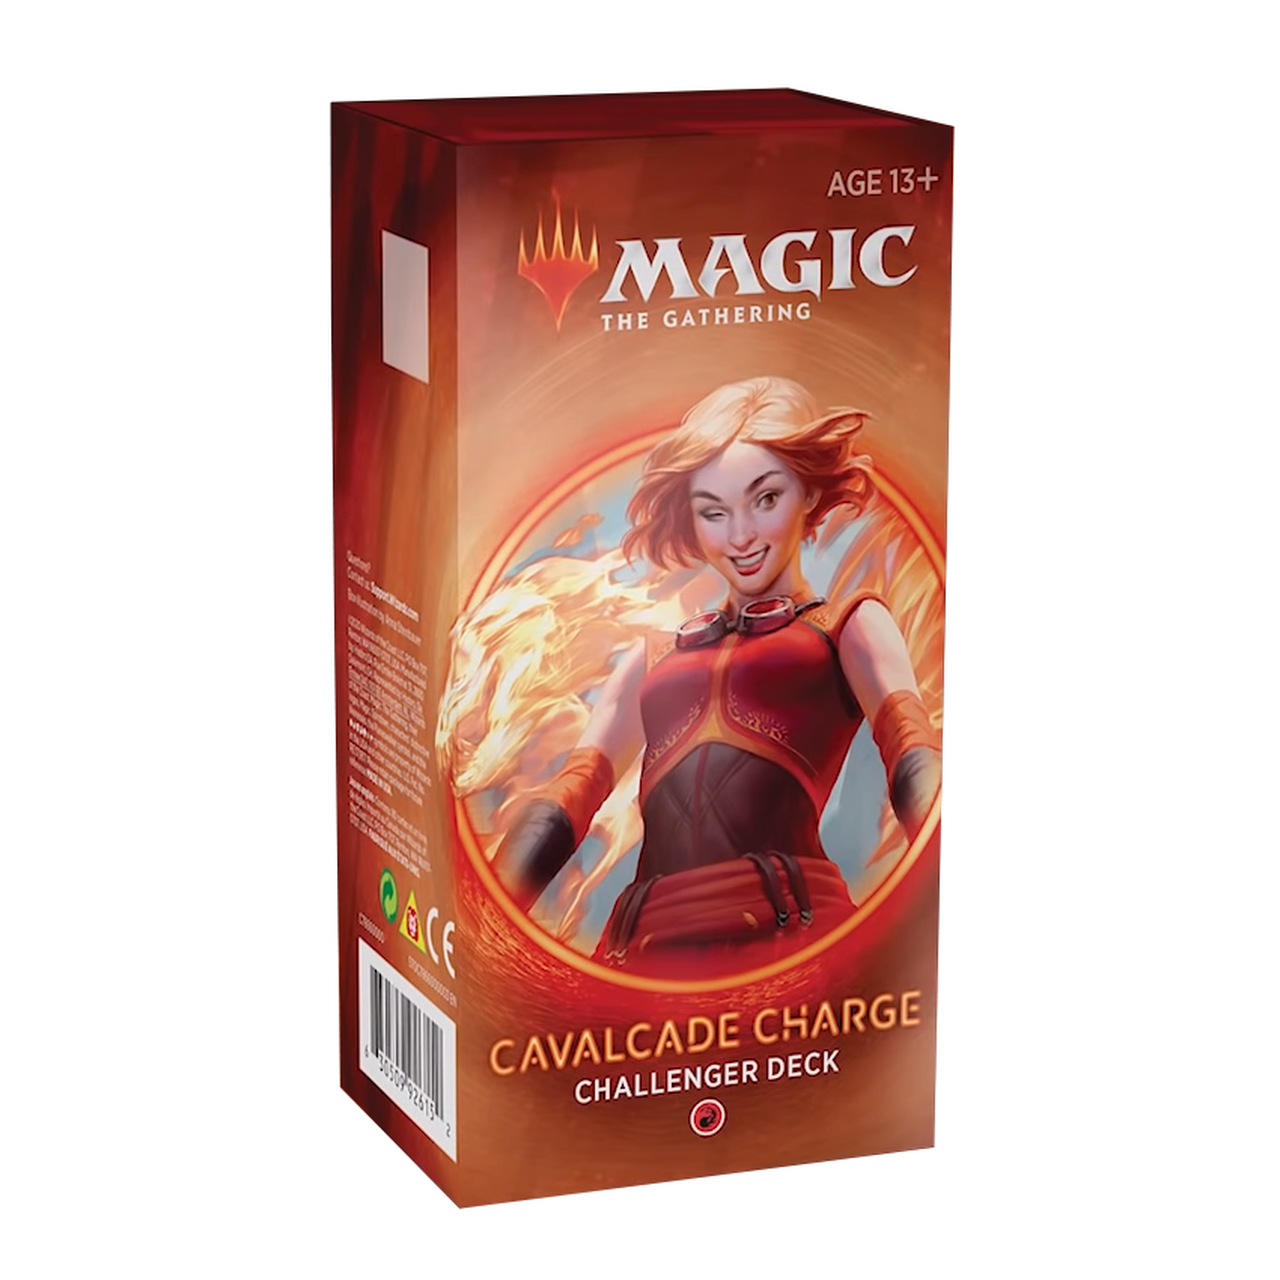 Challenger Deck 2020 - Cavalcade Charge